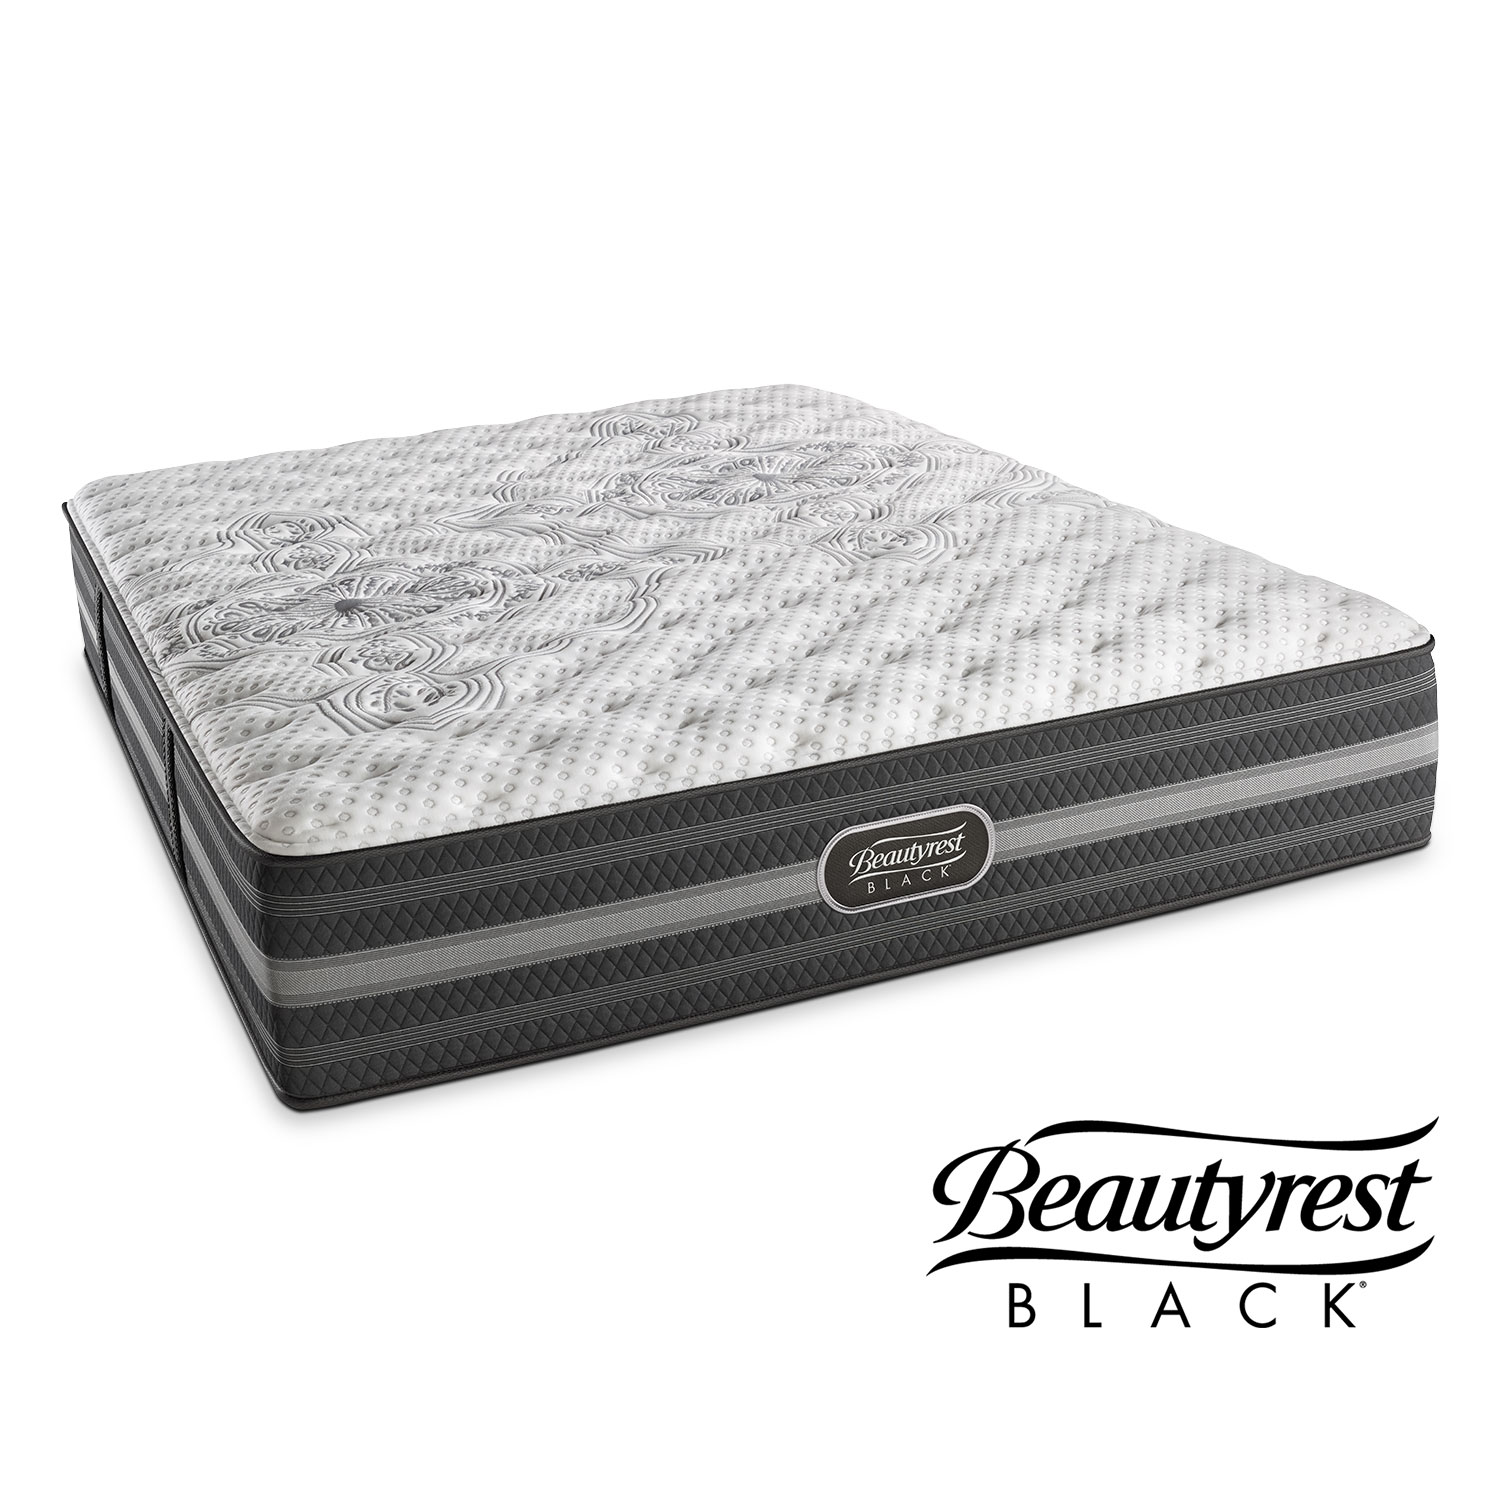 Mattresses and Bedding - Calista Extra-Firm King Mattress